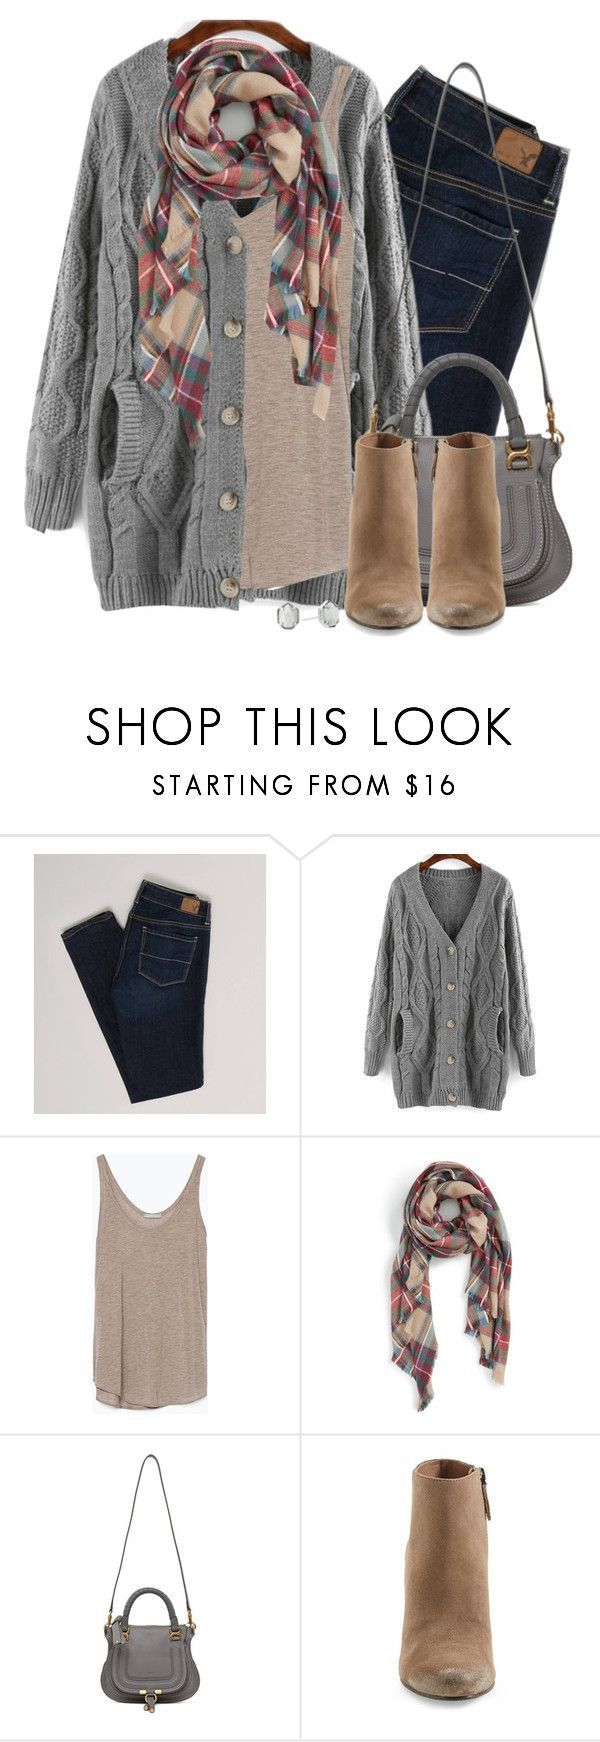 Gray cable knit, wedge boots & plaid scarf by steffiestaffie on Polyvore featuring Zara, American Eagle Outfitters, Dolce Vita, Chlo�, Kendra Scott and Sole Society